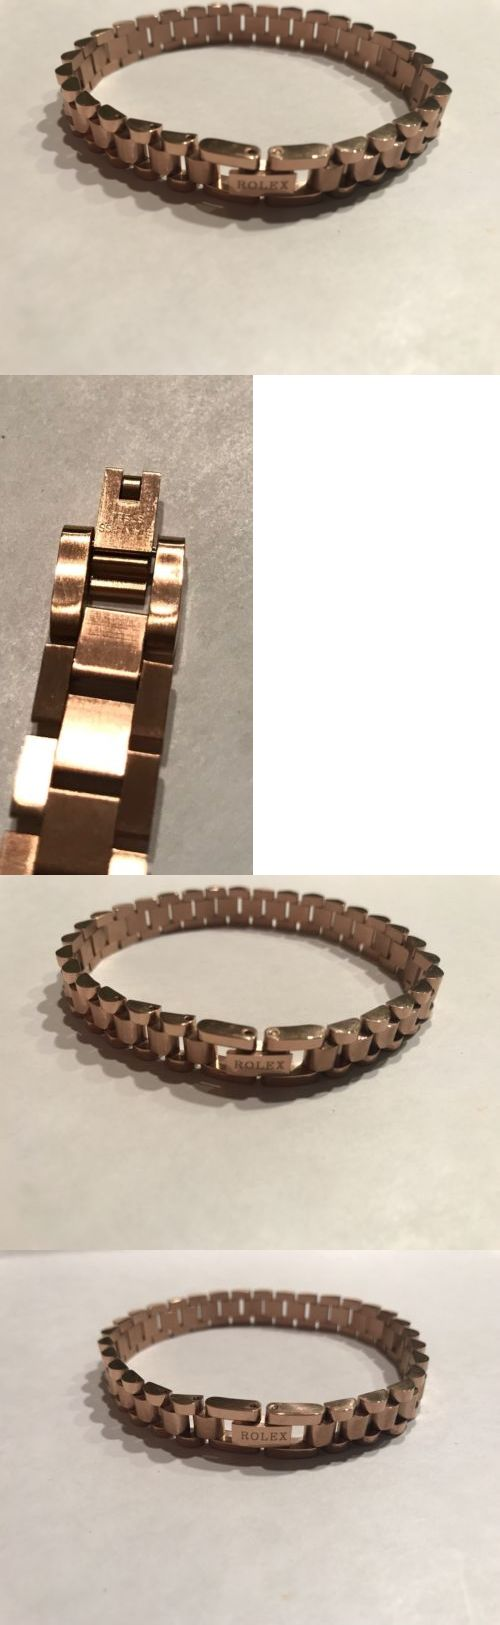 Rolex stainless steal rose gold plated unisex bracelet inc